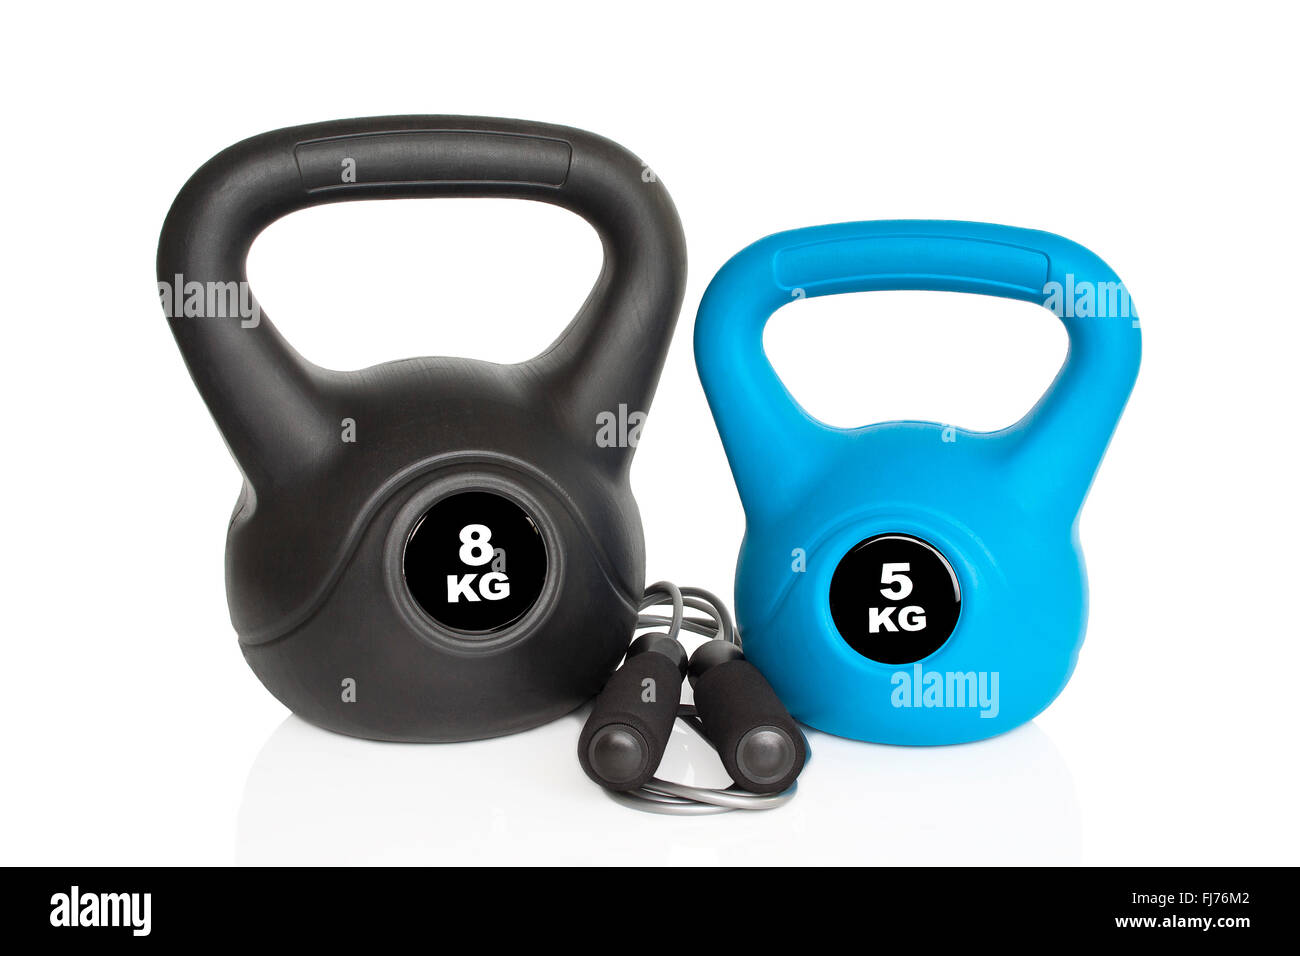 Kettlebells and skipping rope isolated on white background. Weights for a fitness training. - Stock Image